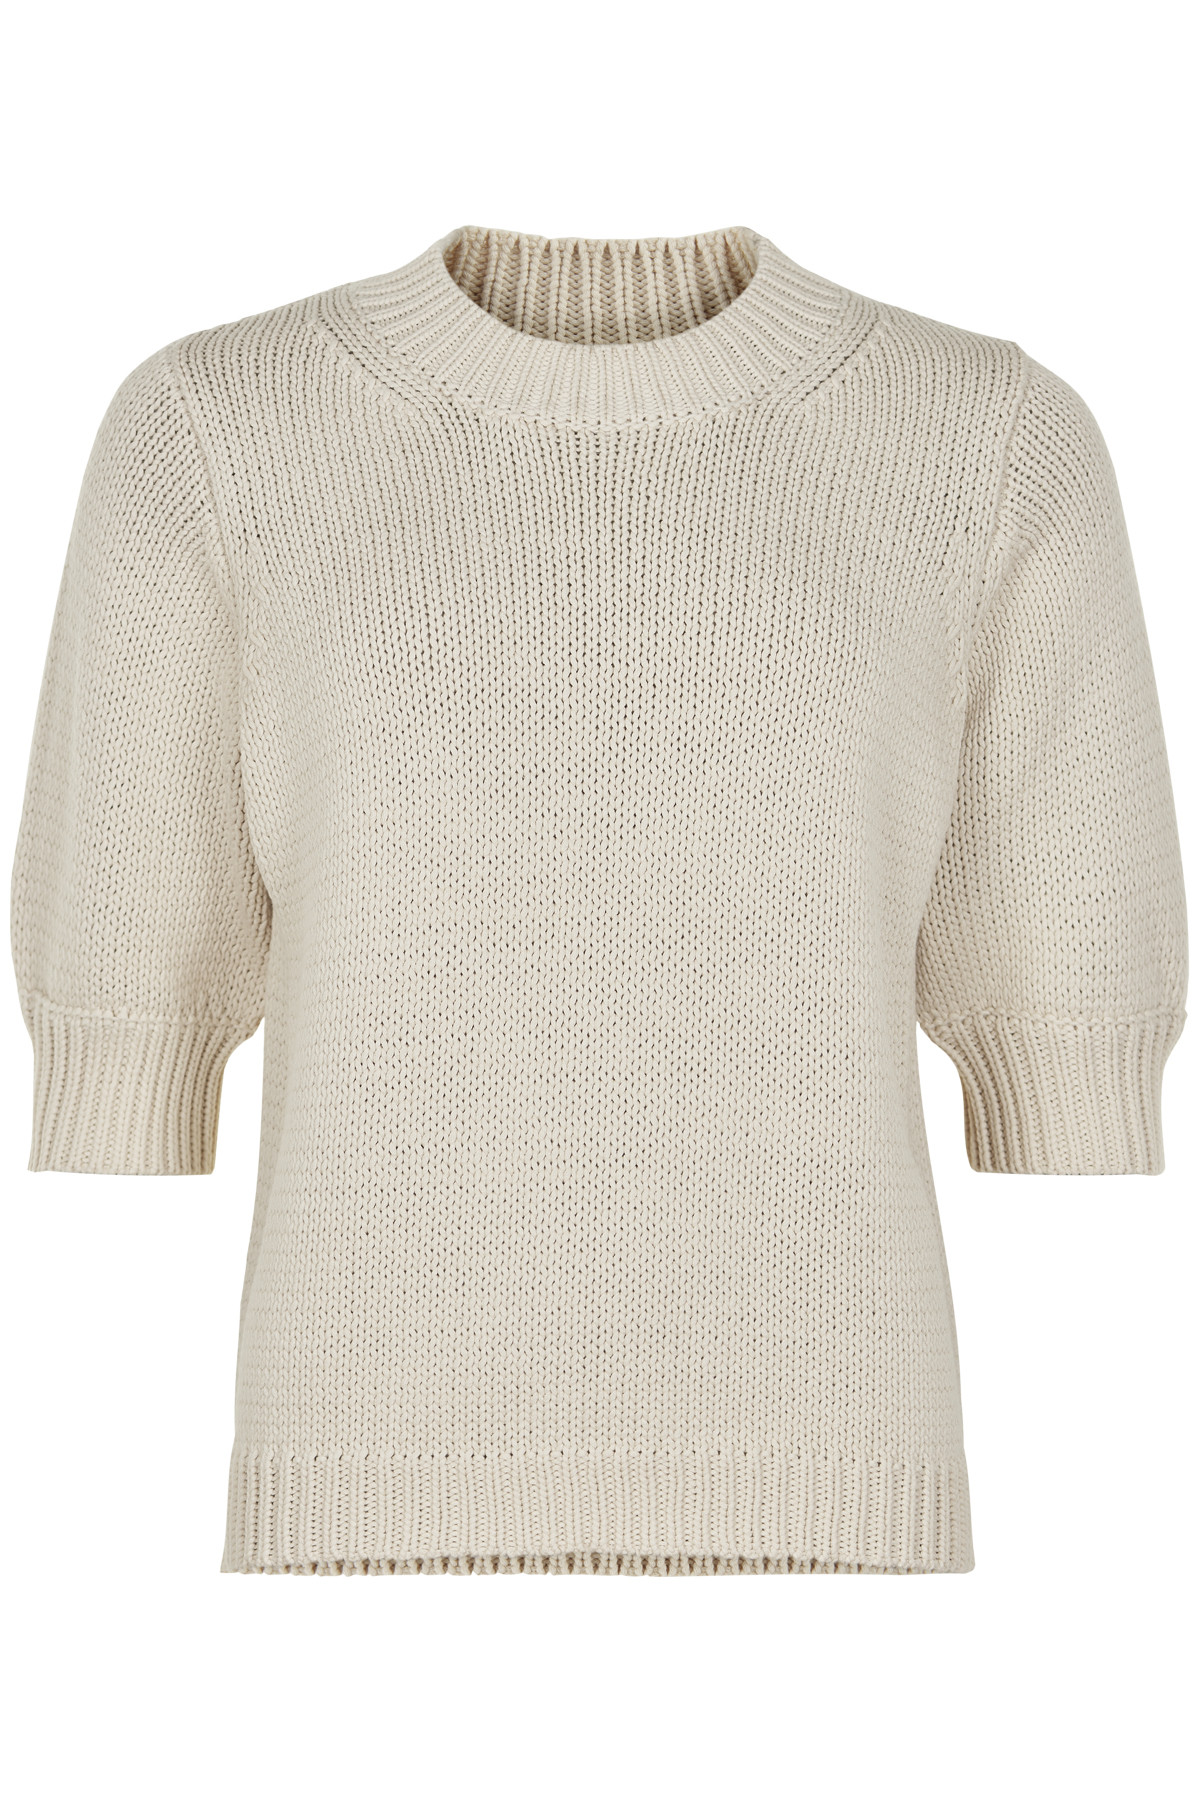 Image of   AND LESS ALBENA PULLOVER 5220205 9504 (Birch, XS)